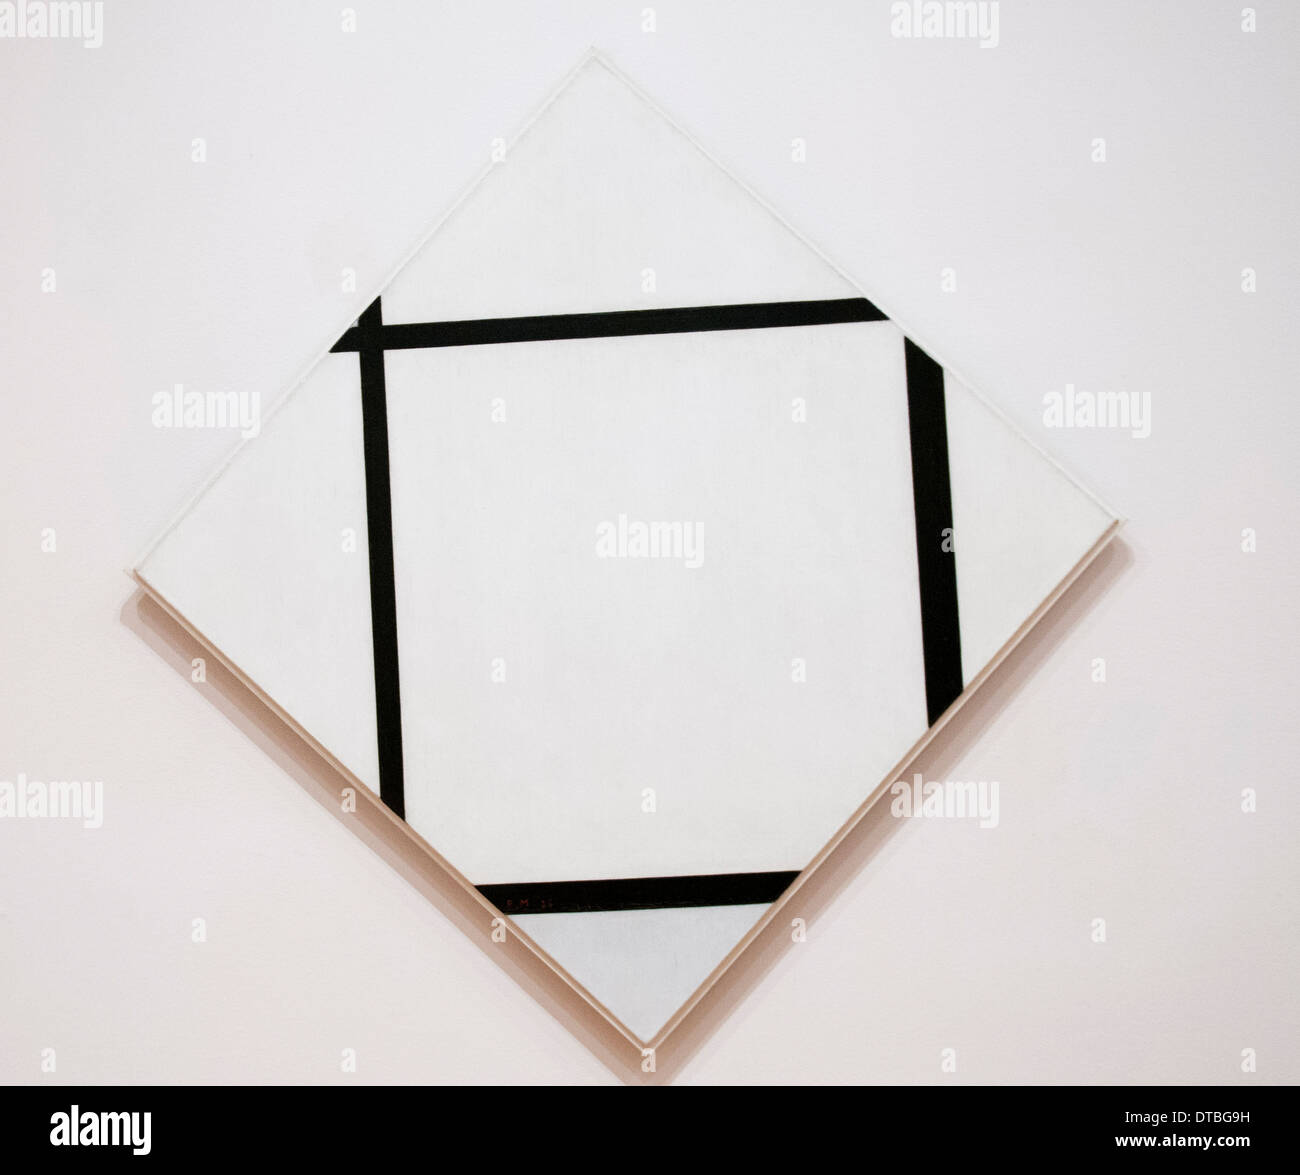 Tableau I: Lozenge with Four Lines and Gray, by Piet Mondrian at the Museum of Modern Art, New York City USA - Stock Image